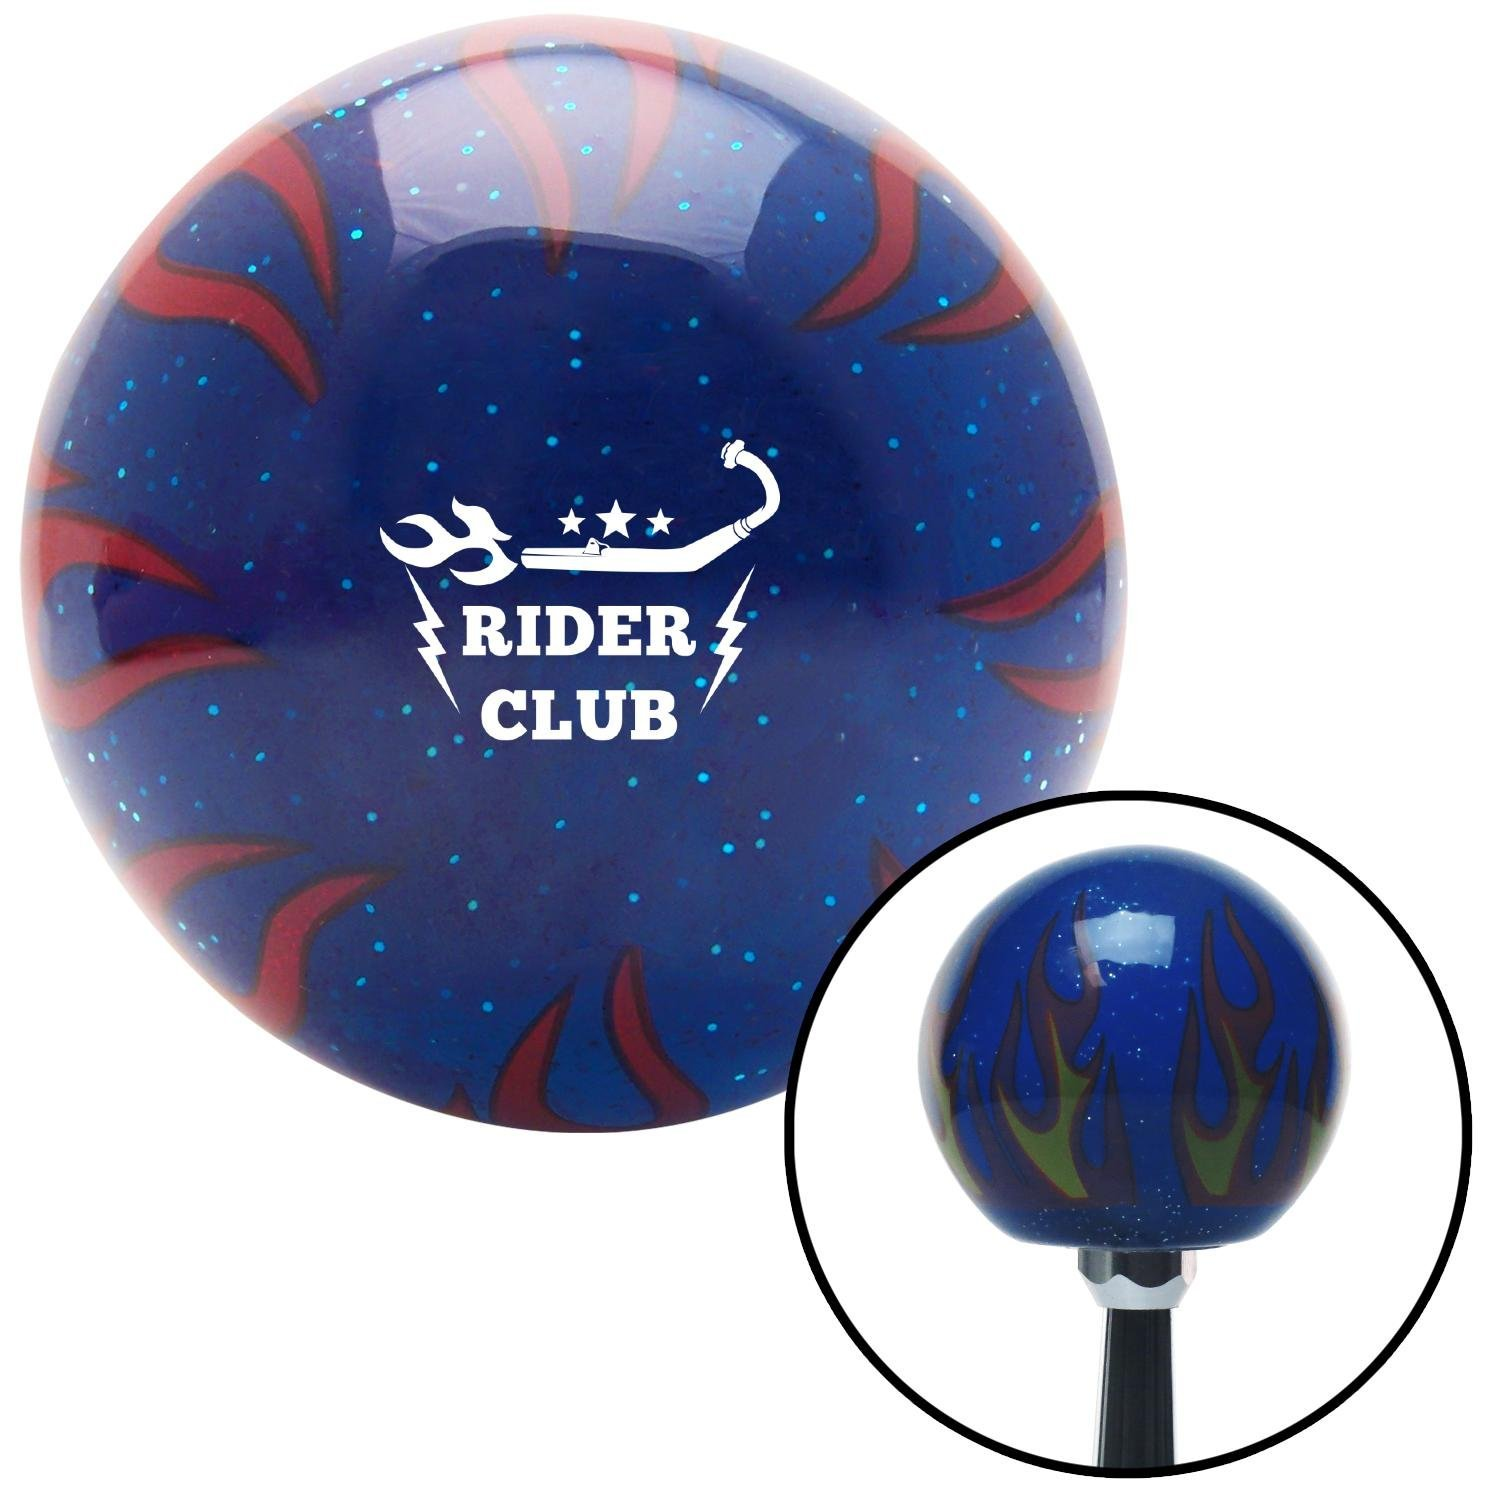 American Shifter 298094 Shift Knob White Rider Club Blue Flame Metal Flake with M16 x 1.5 Insert